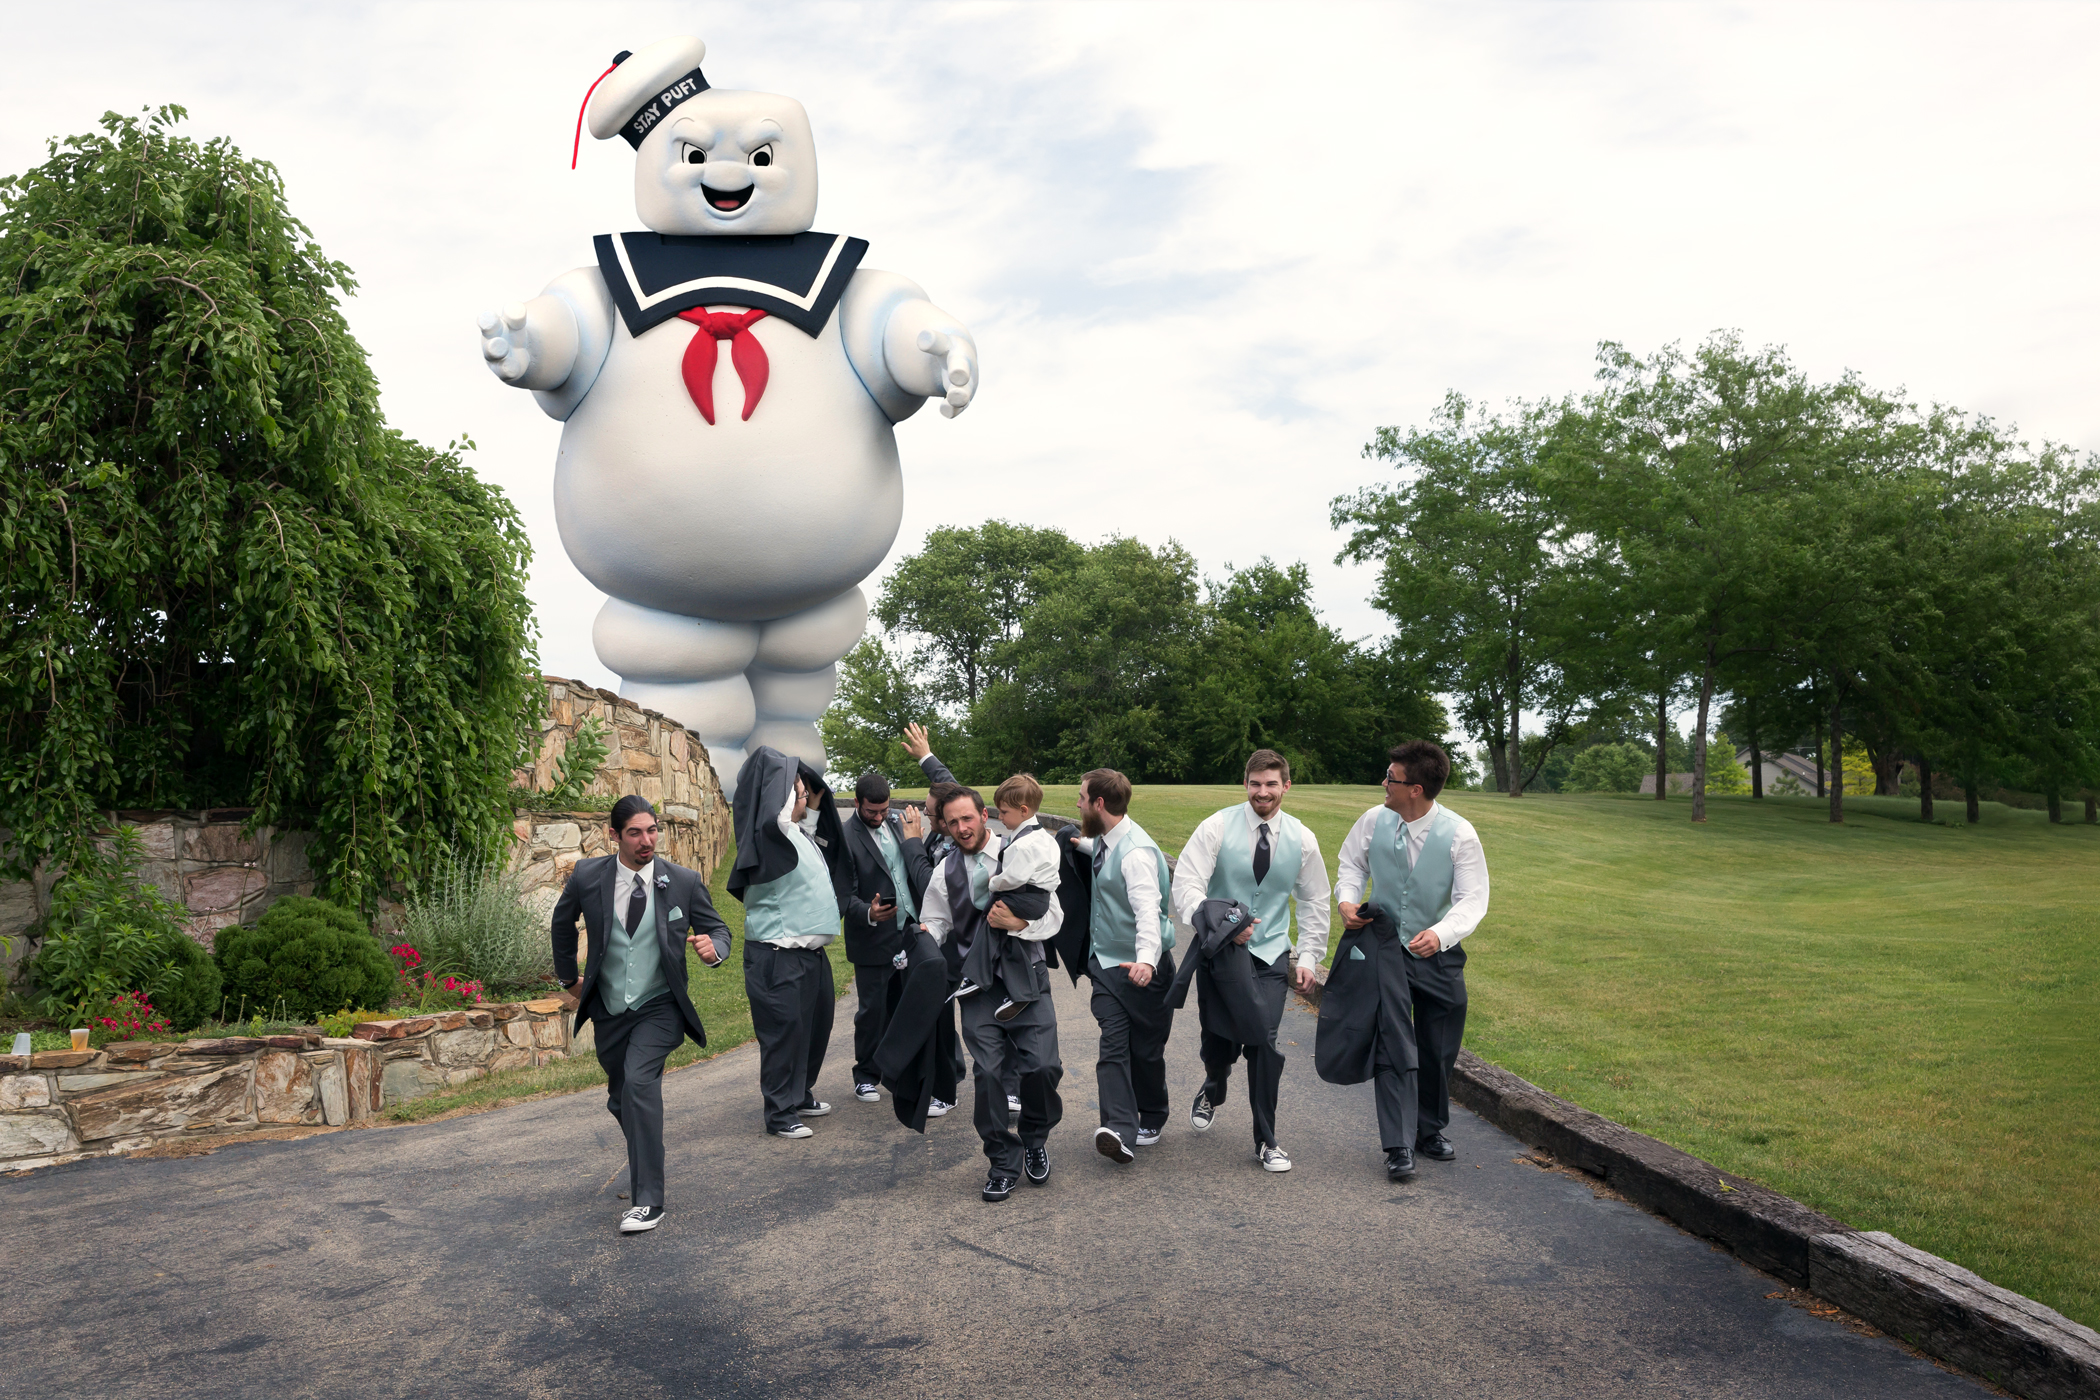 Twinbliss_Photography_Chicago_Weddings_Engagements_Kacikay_Brandyn_Rock_Falls_Illinois_Stay_Puft_Gho